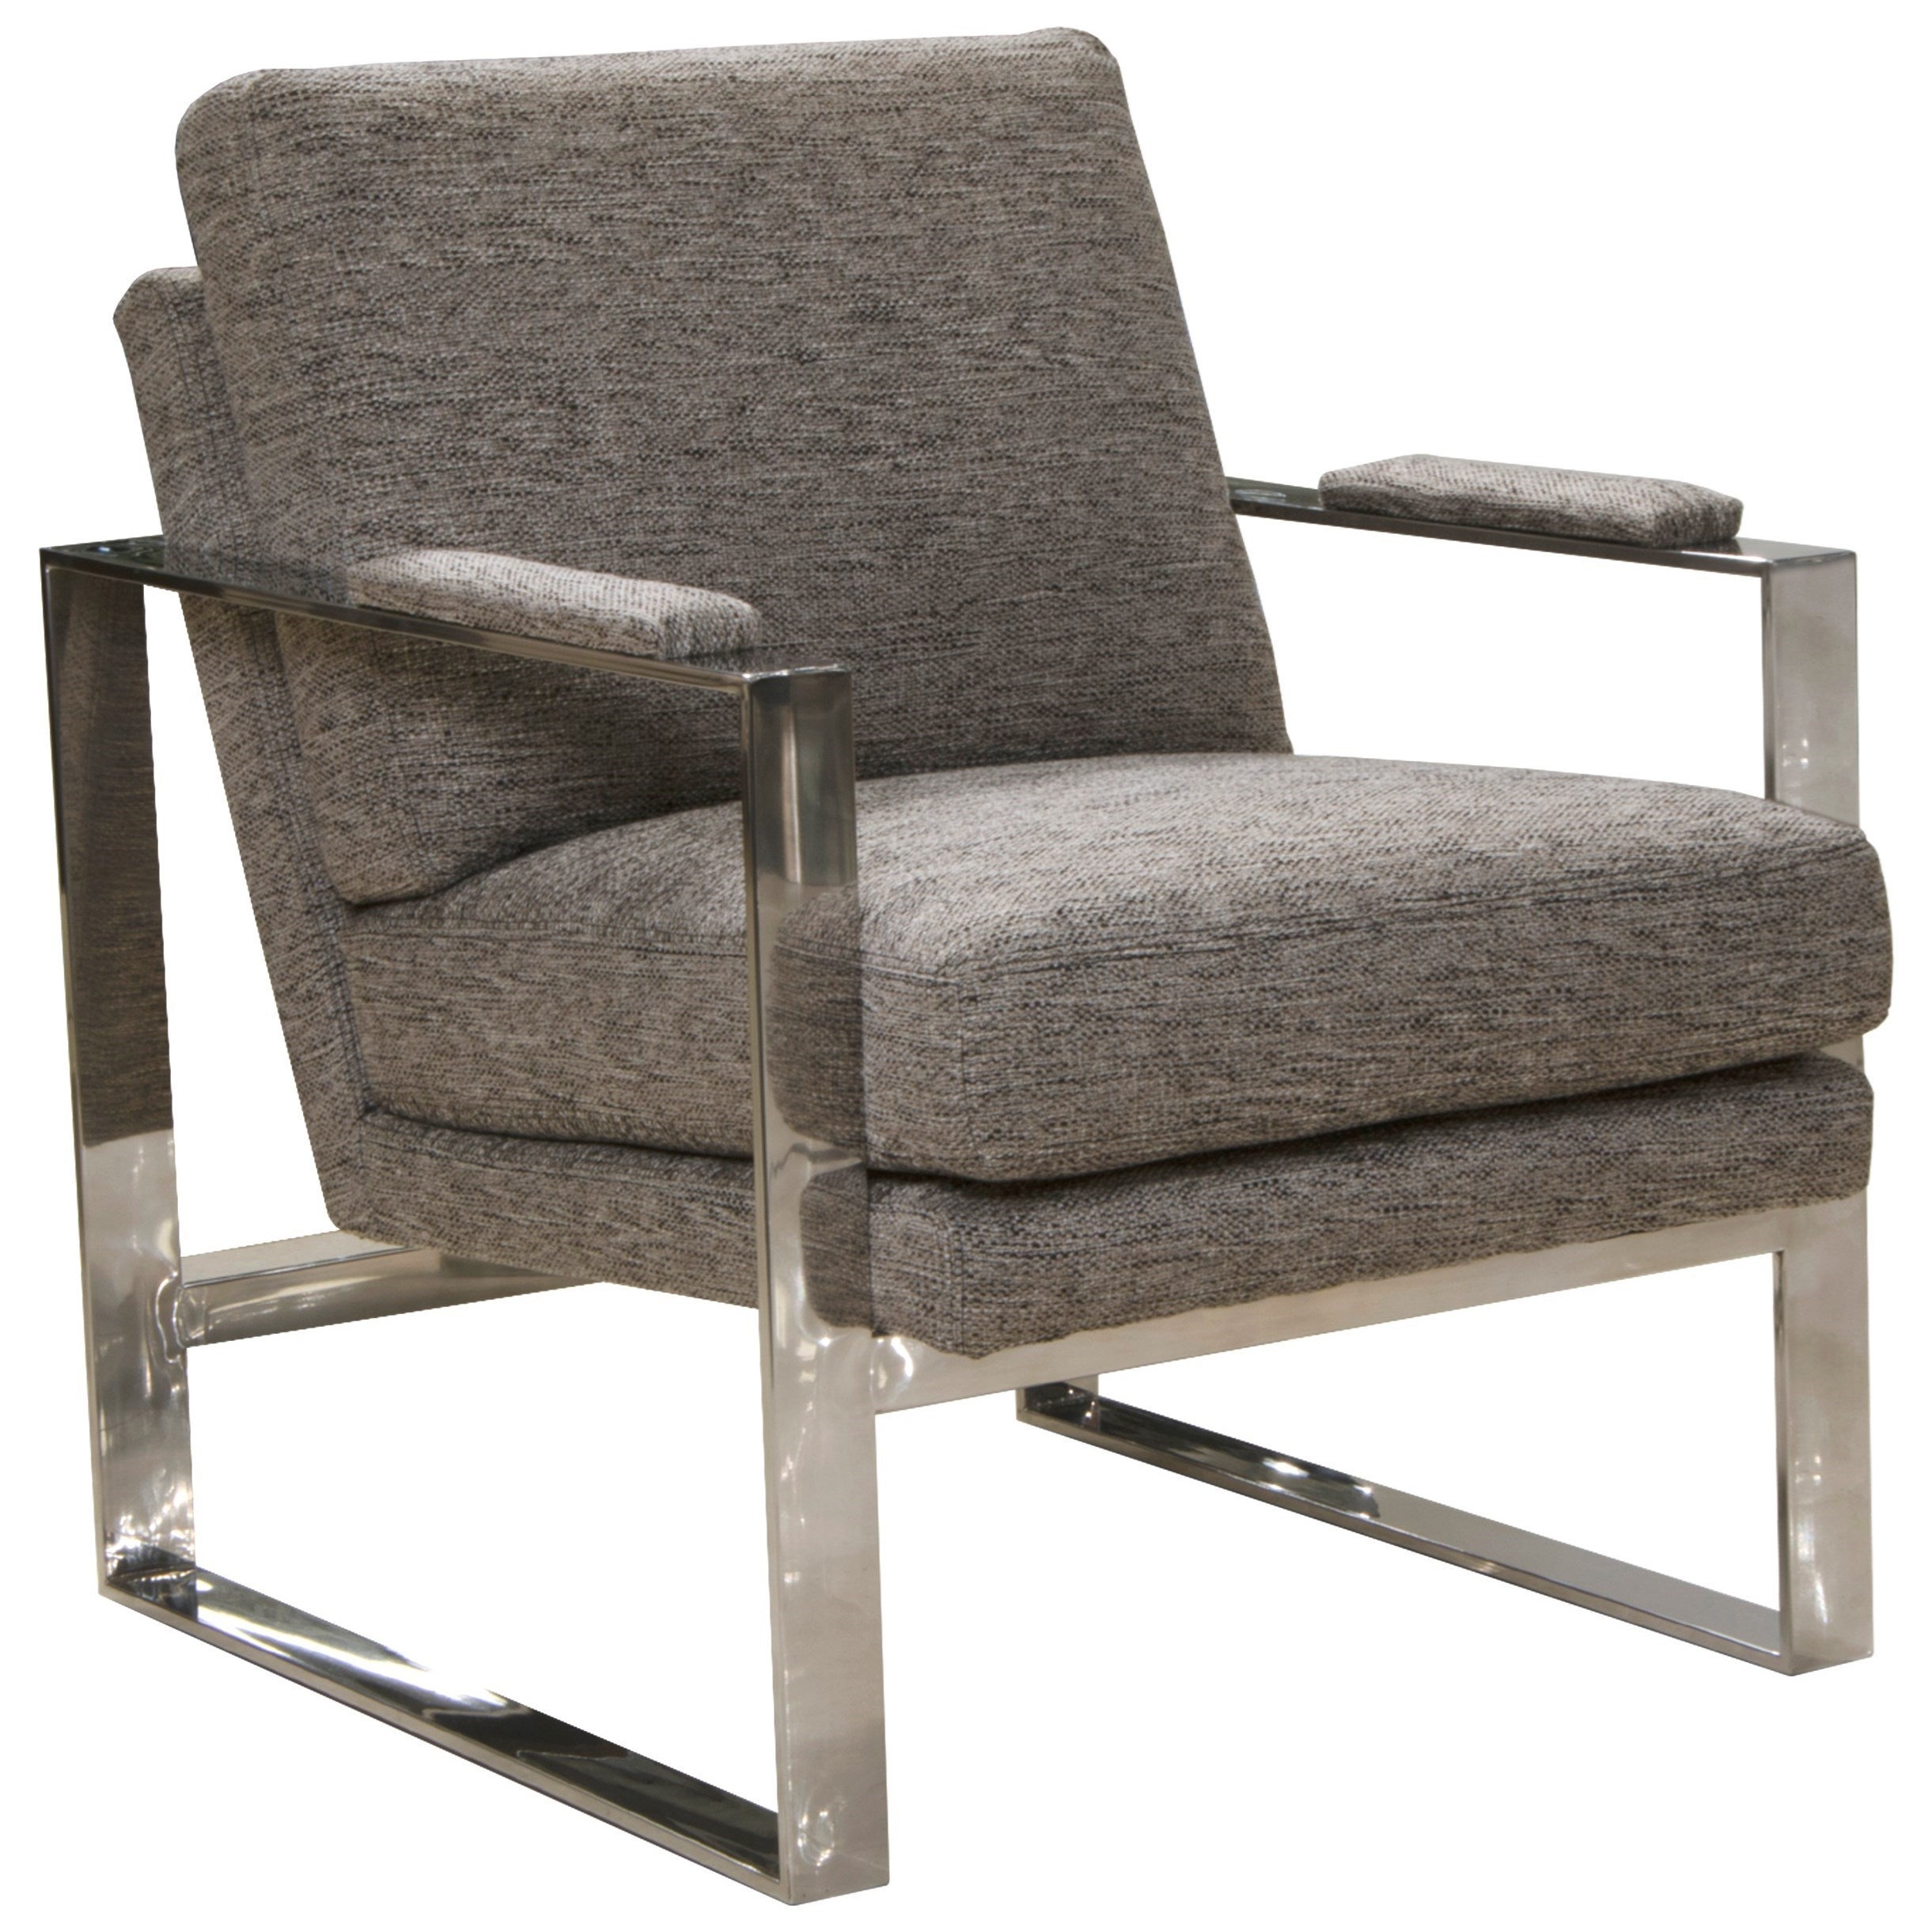 Contemporary Metal Chair with Padded Arms